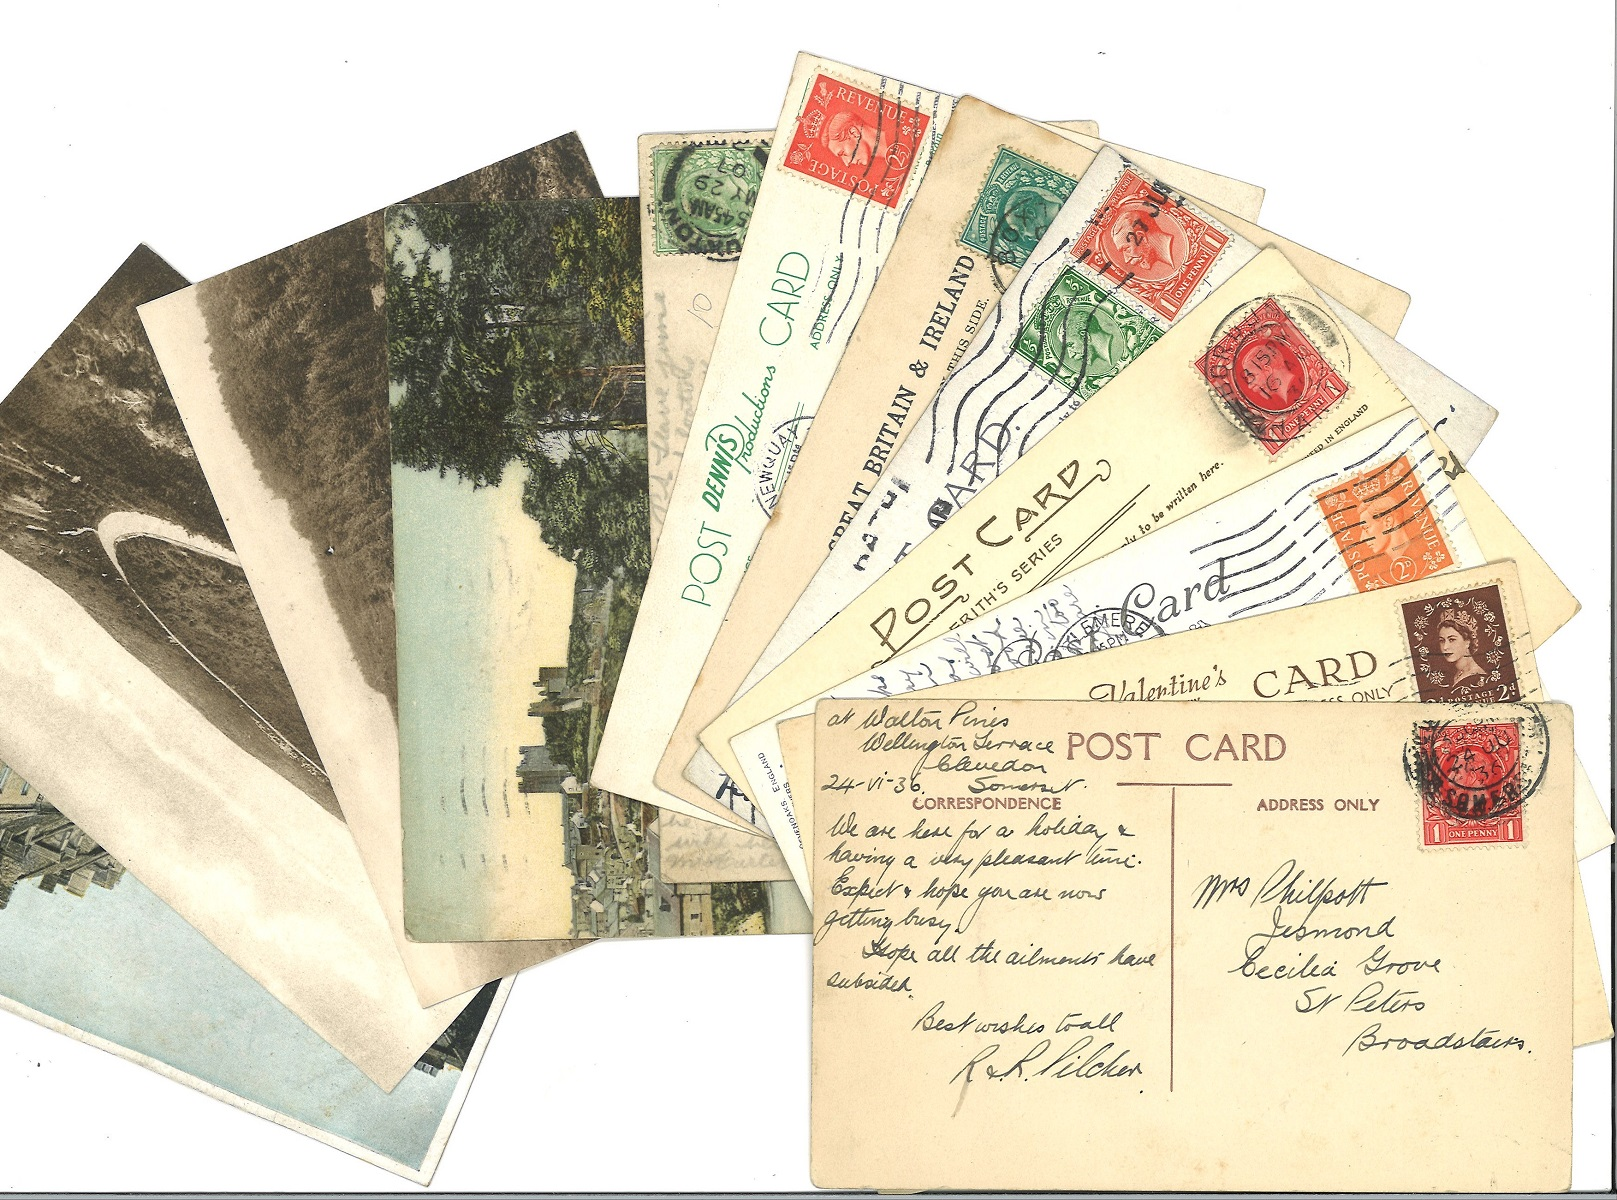 Collection over 100 Vintage Postcards some of which with Messages and Stamps 1930s 1940s 1950s. Good